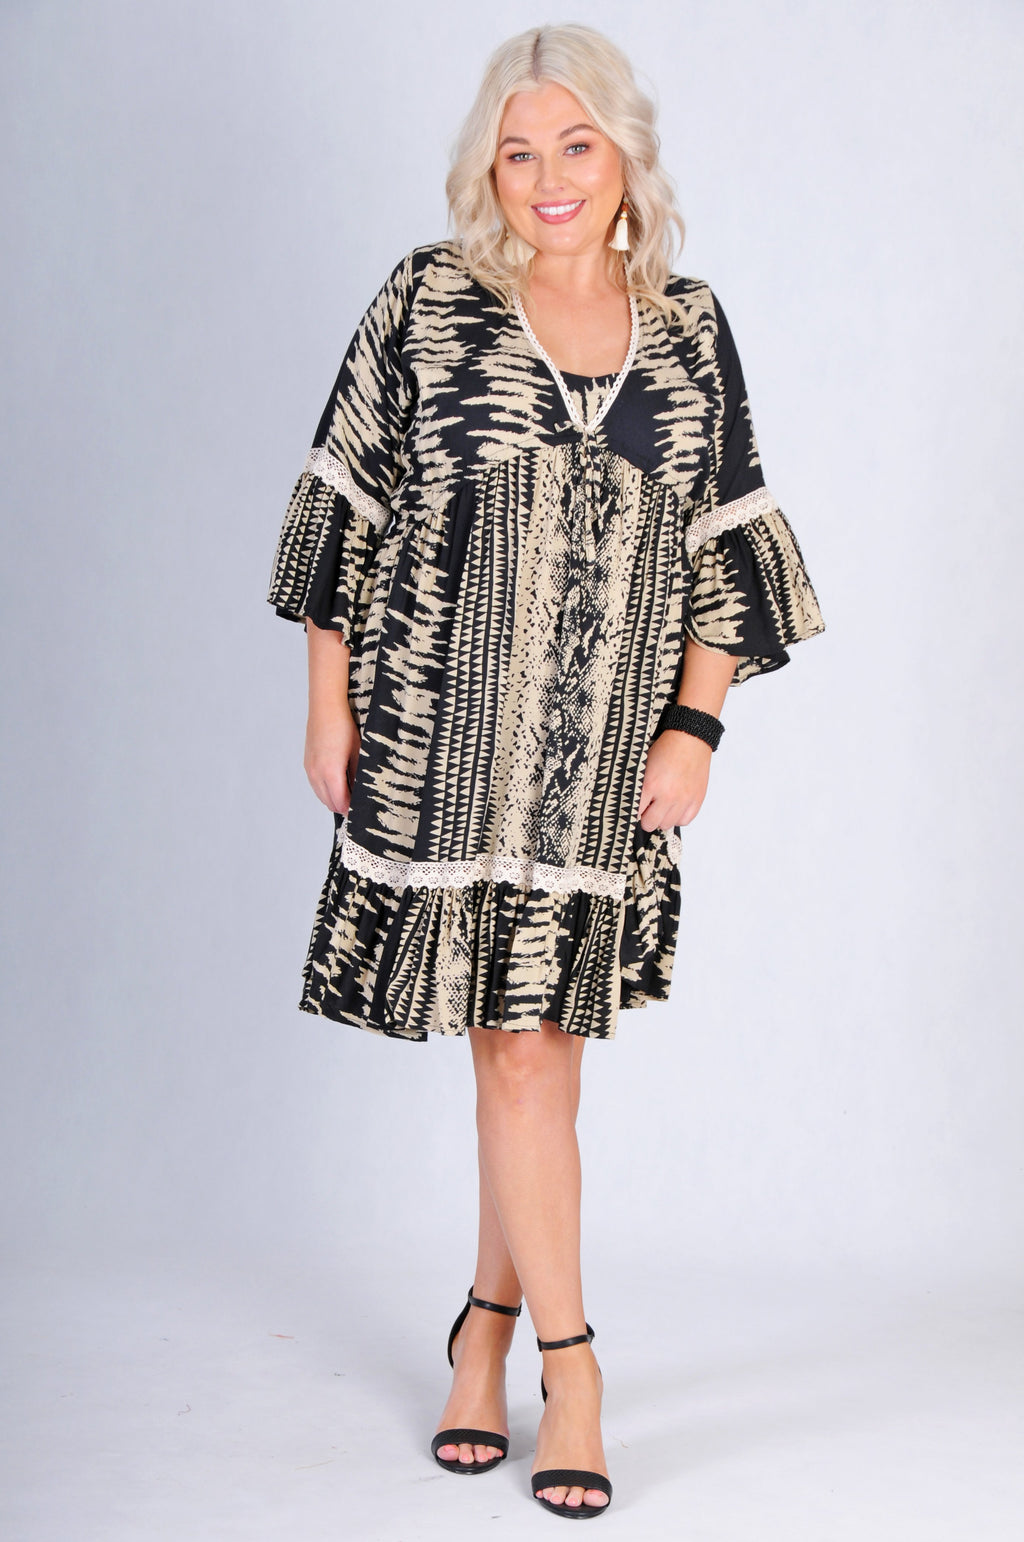 VBLD728 - BOHO BELL SLEEVE DRESS - BLACK/BEIGE